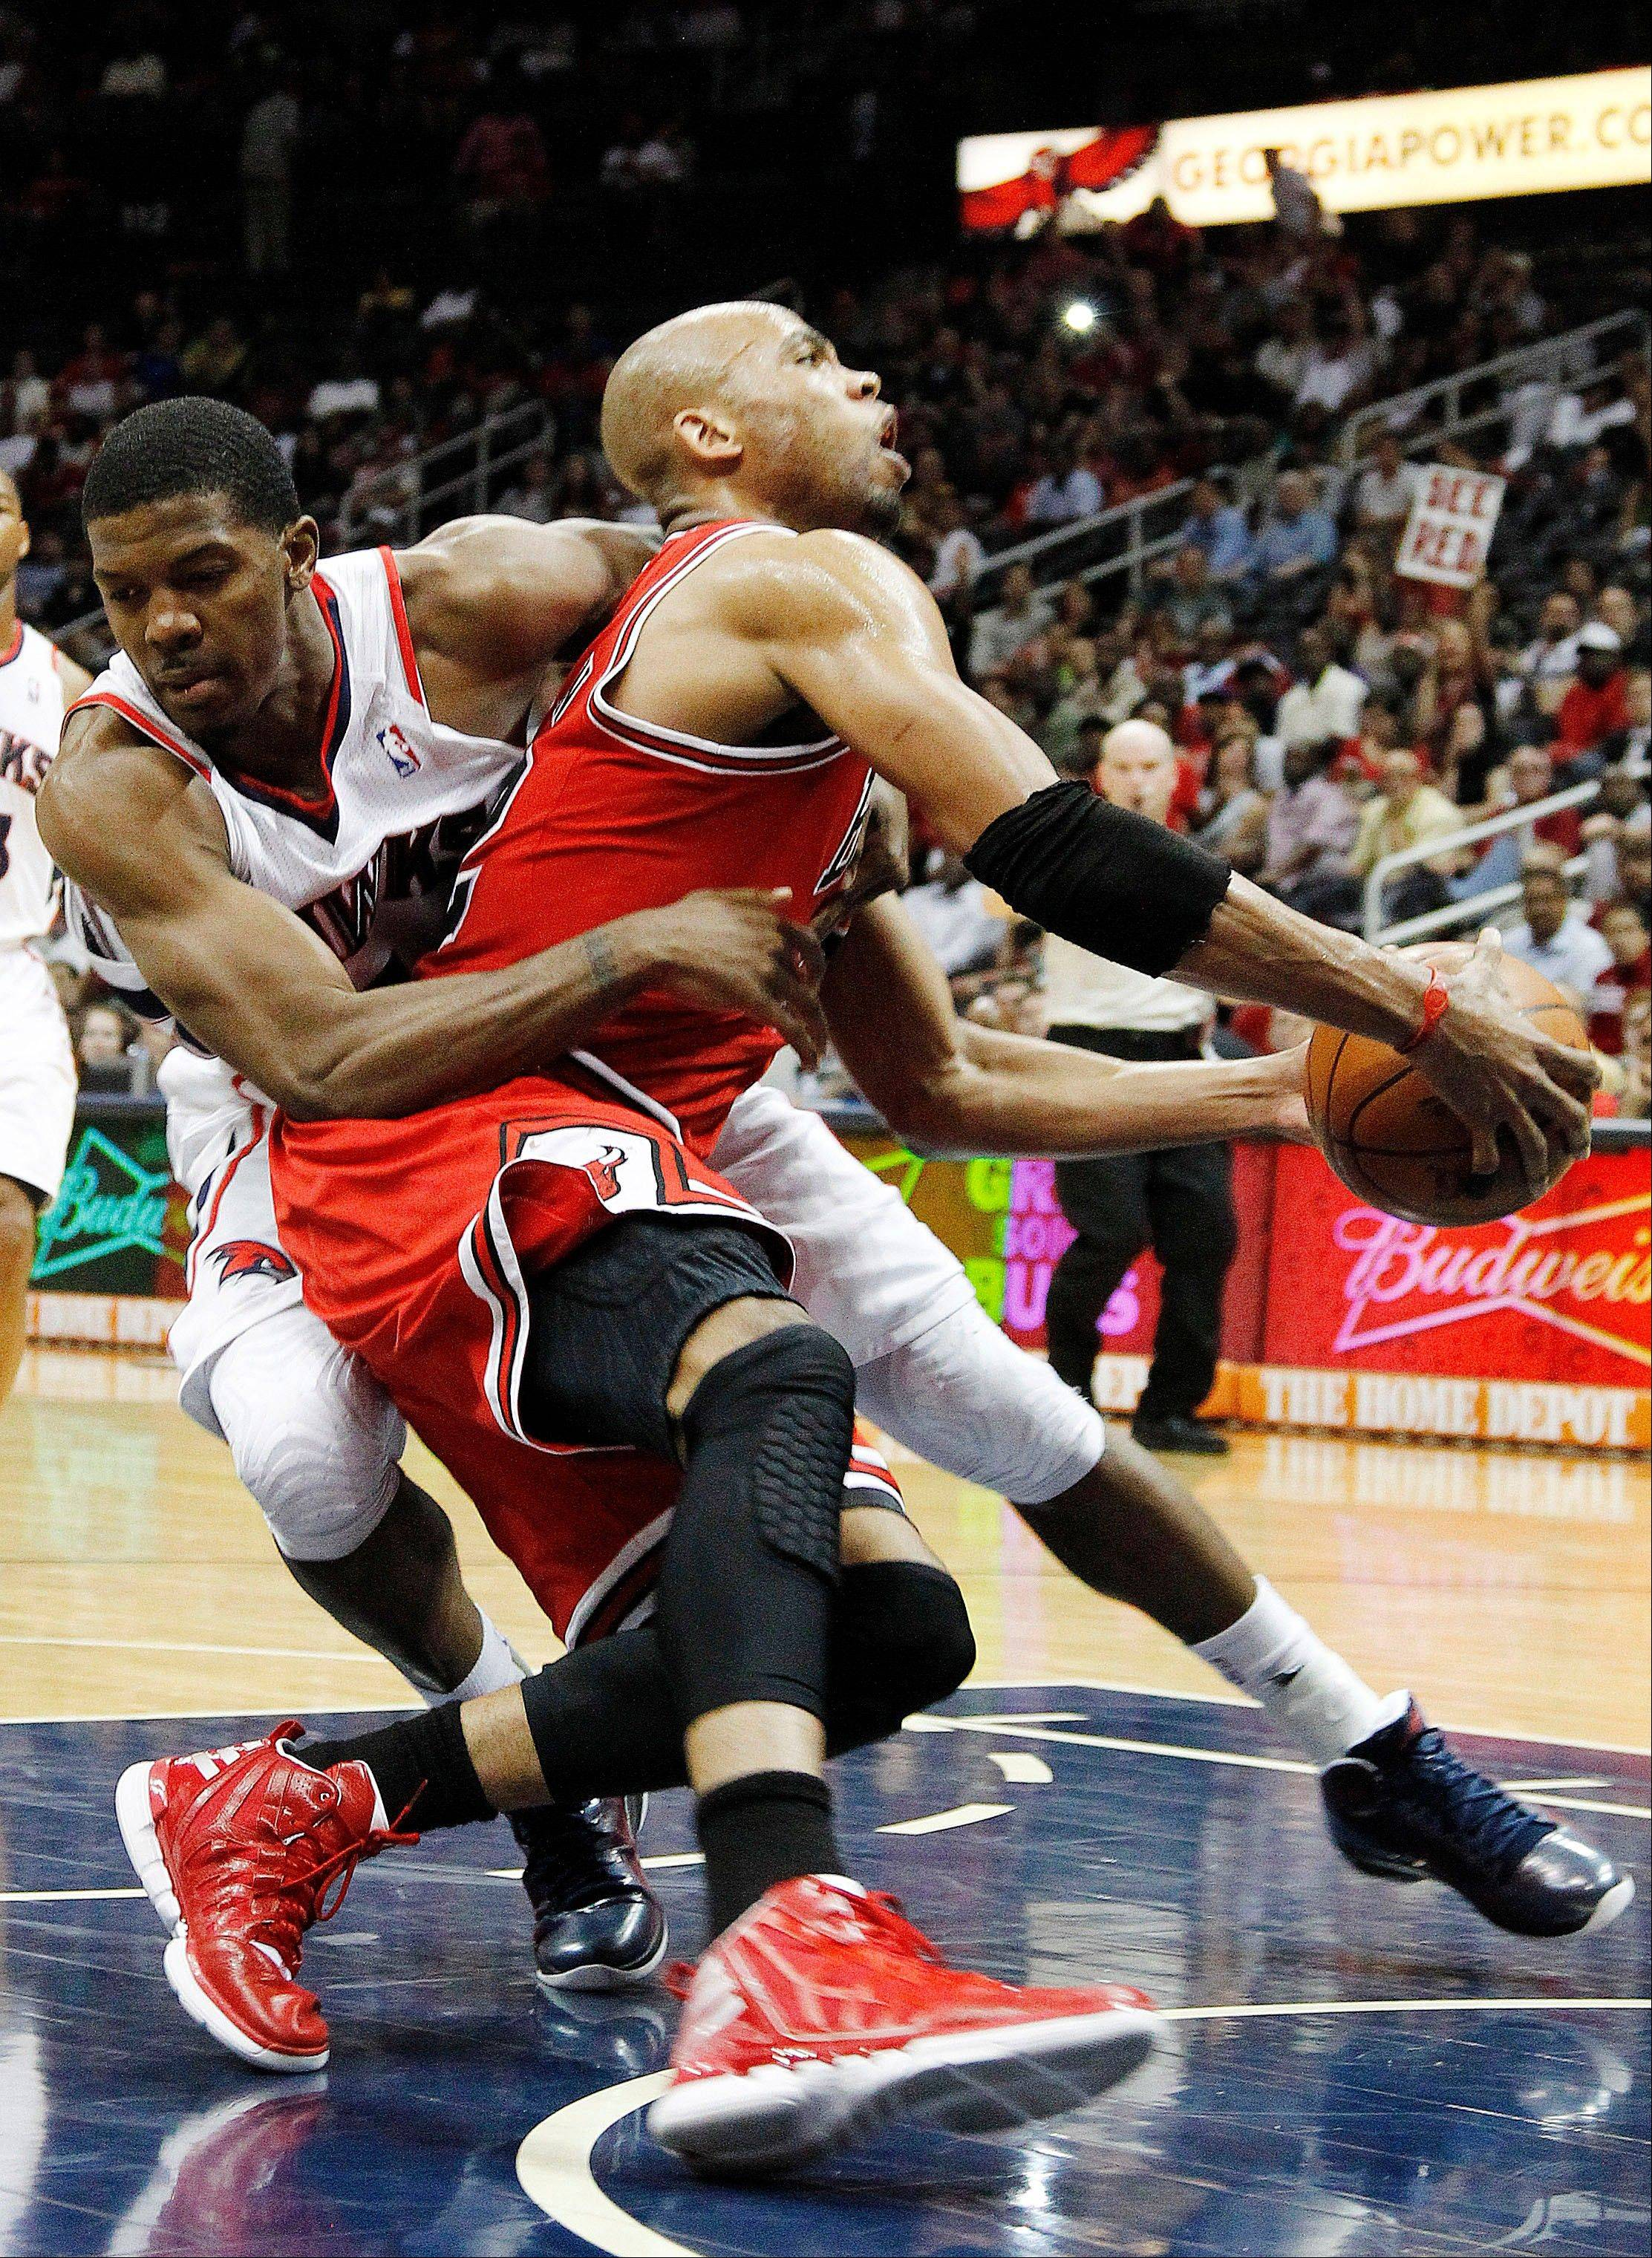 Bulls forward Taj Gibson is fouled by Atlanta Hawks shooting guard Joe Johnson ss he drives to the basket Wednesday in the second half.